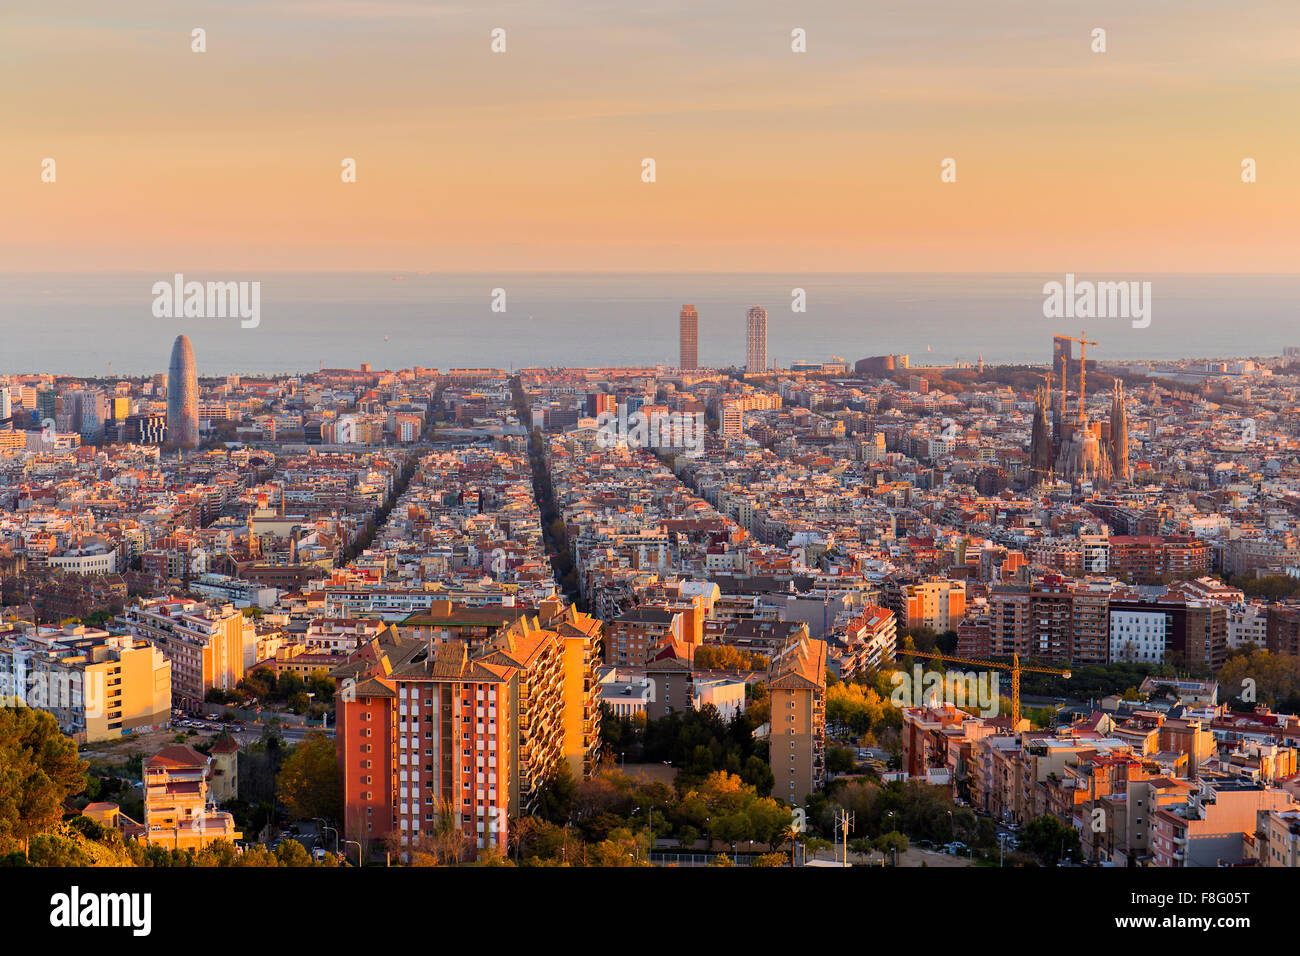 Barcelona skyline in the afternoon at Golden Hour - Stock Image